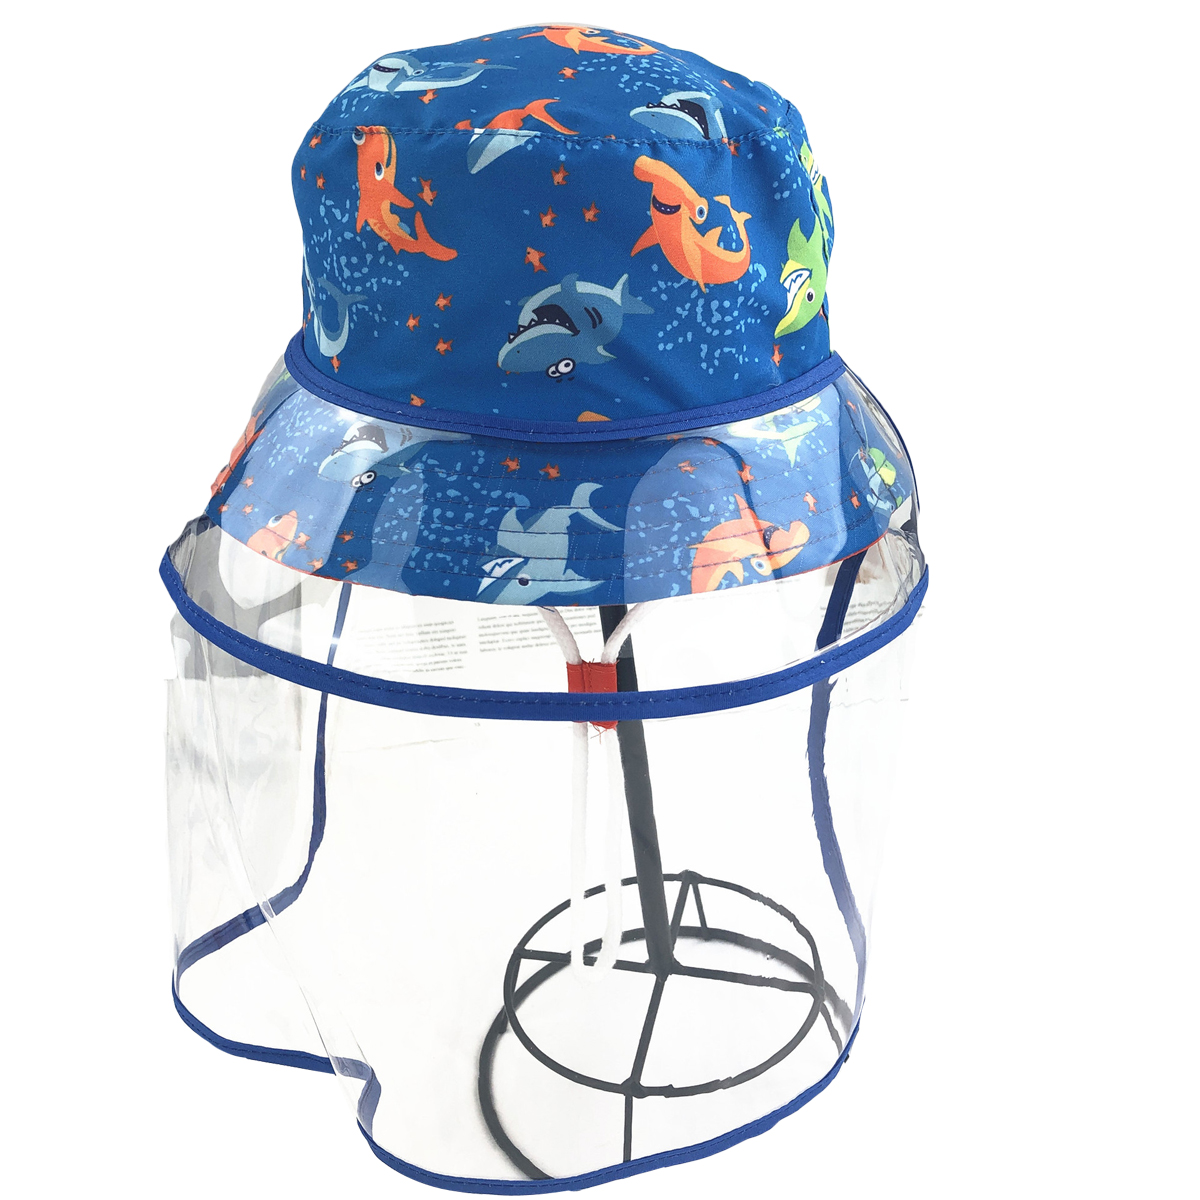 Anti-saliva Wide Brim Bucket Cap for 0-2 Years Old for Outdoor Anti shade JIAYUAN Kids Hat with Shield Baby Sun Hat with Face Shield Detachable UV Clear Visor